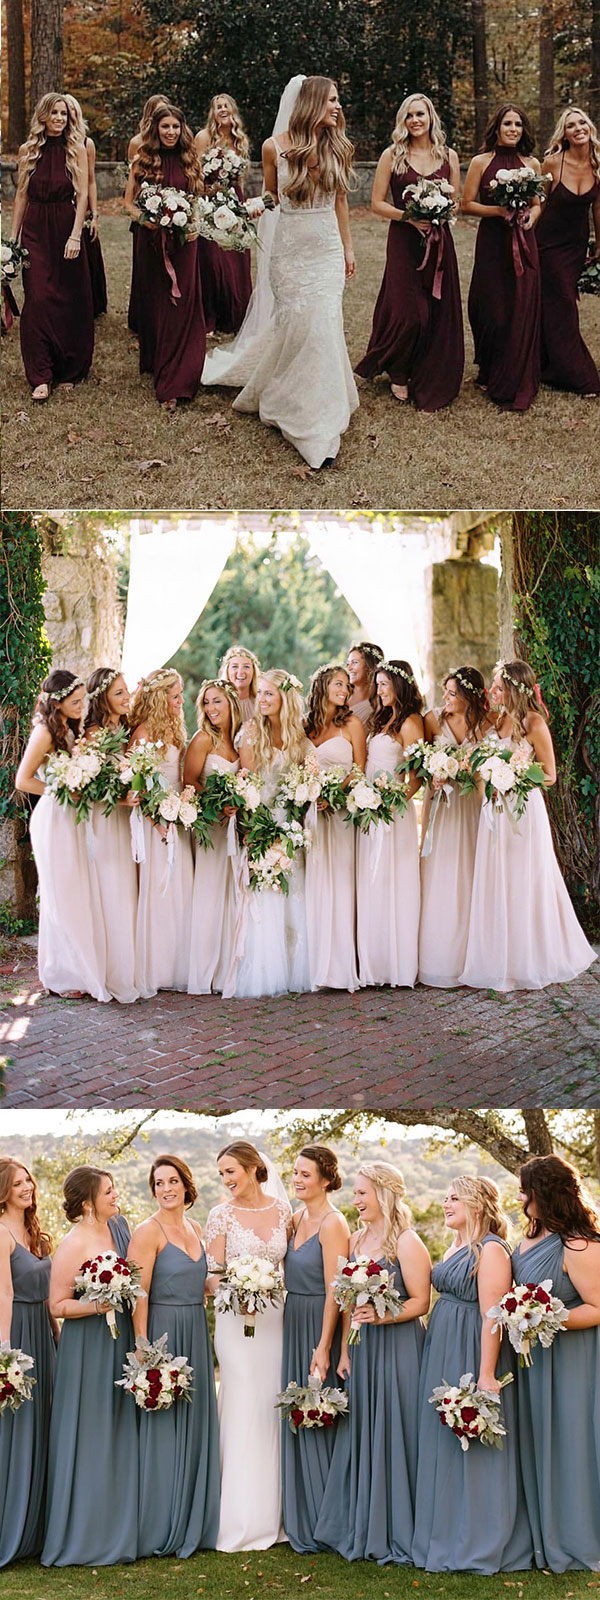 Mix And Match Bridesmaid Dresses Done Right 7 Ways To Rock The Trend Wednova Blog